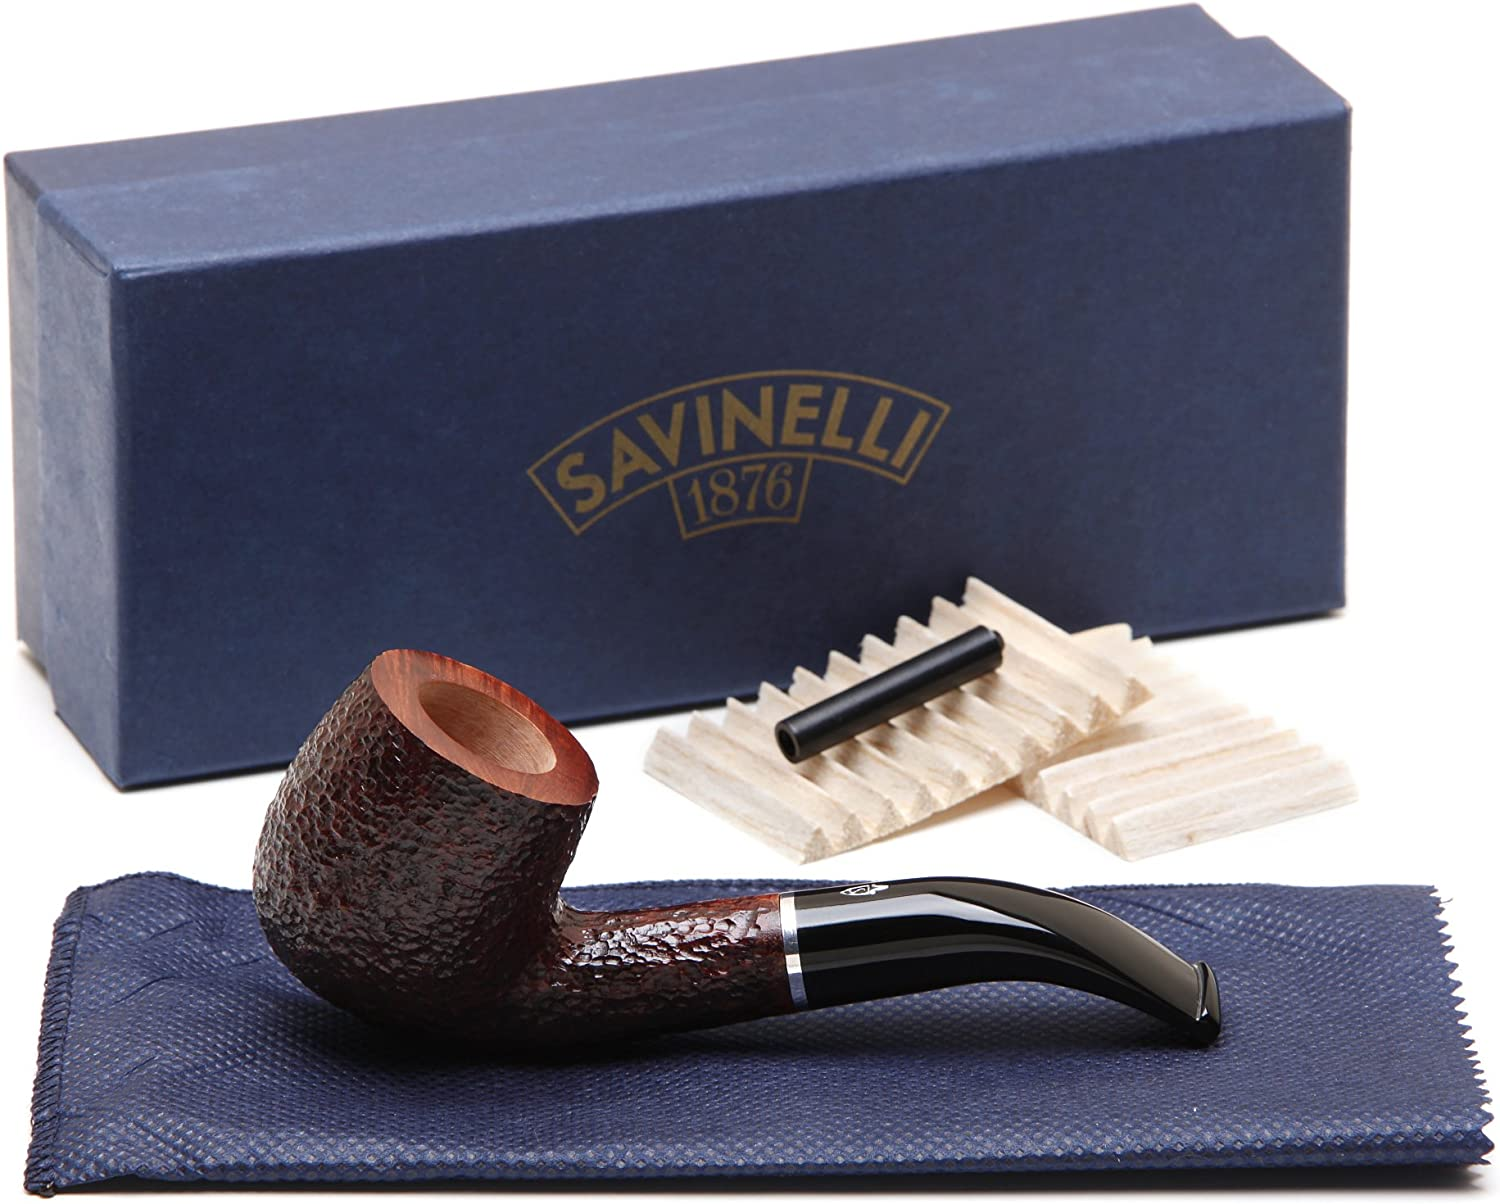 Fixed price for sale Savinelli Pocket Brownblast Tobacco 601 Factory outlet Pipe